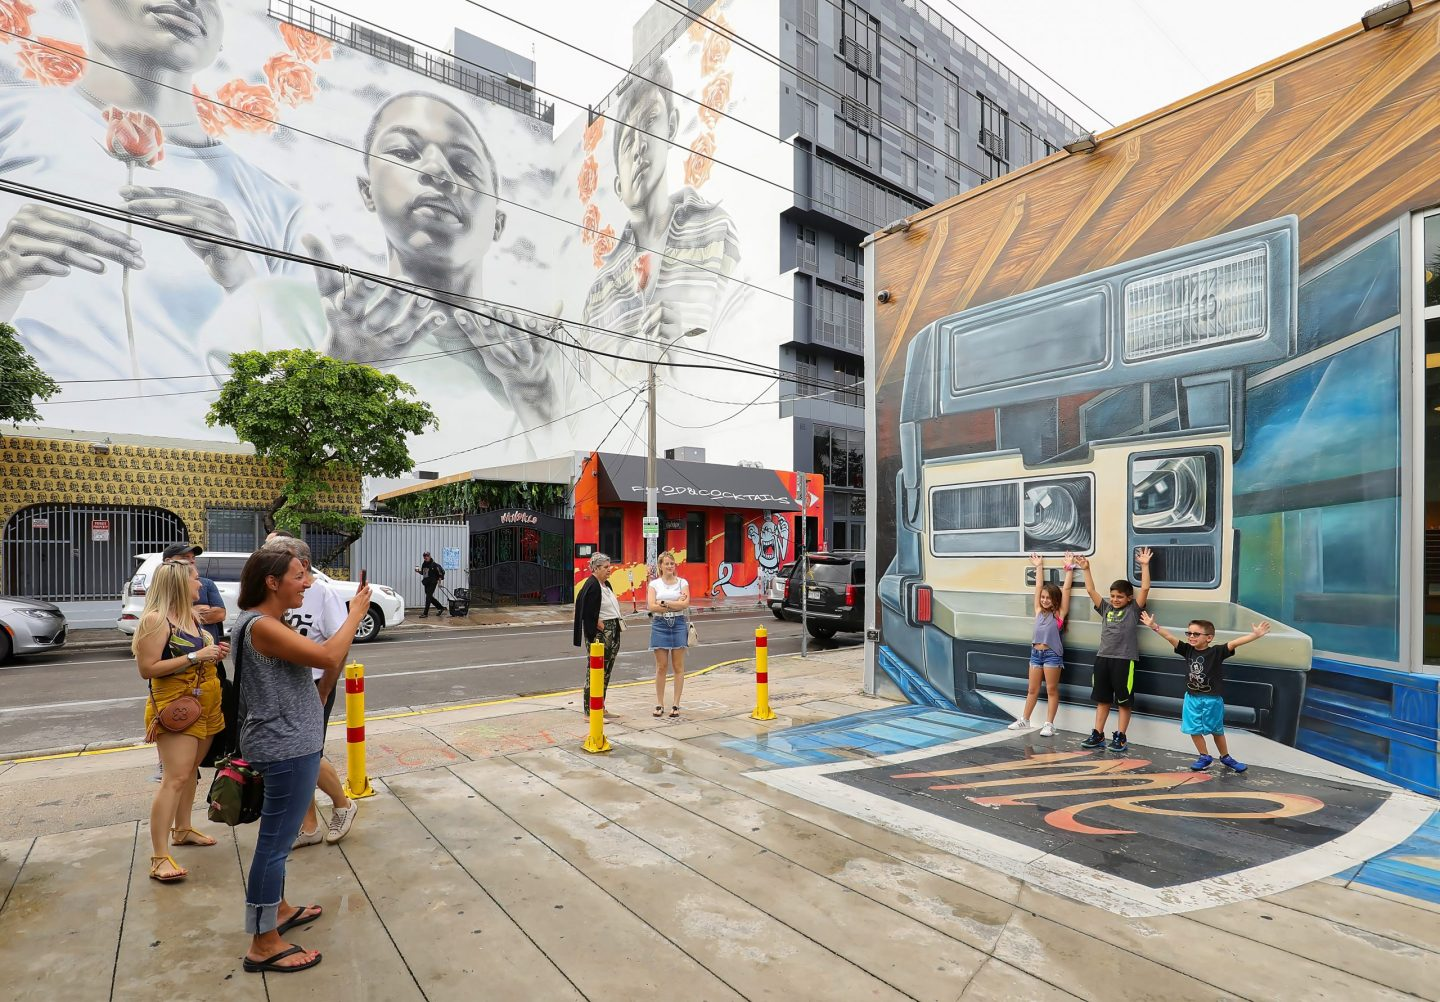 Miami, Florida, USA - December 28, 2019: Mom takes photos of her kids in front of a building ay Wyndwood.